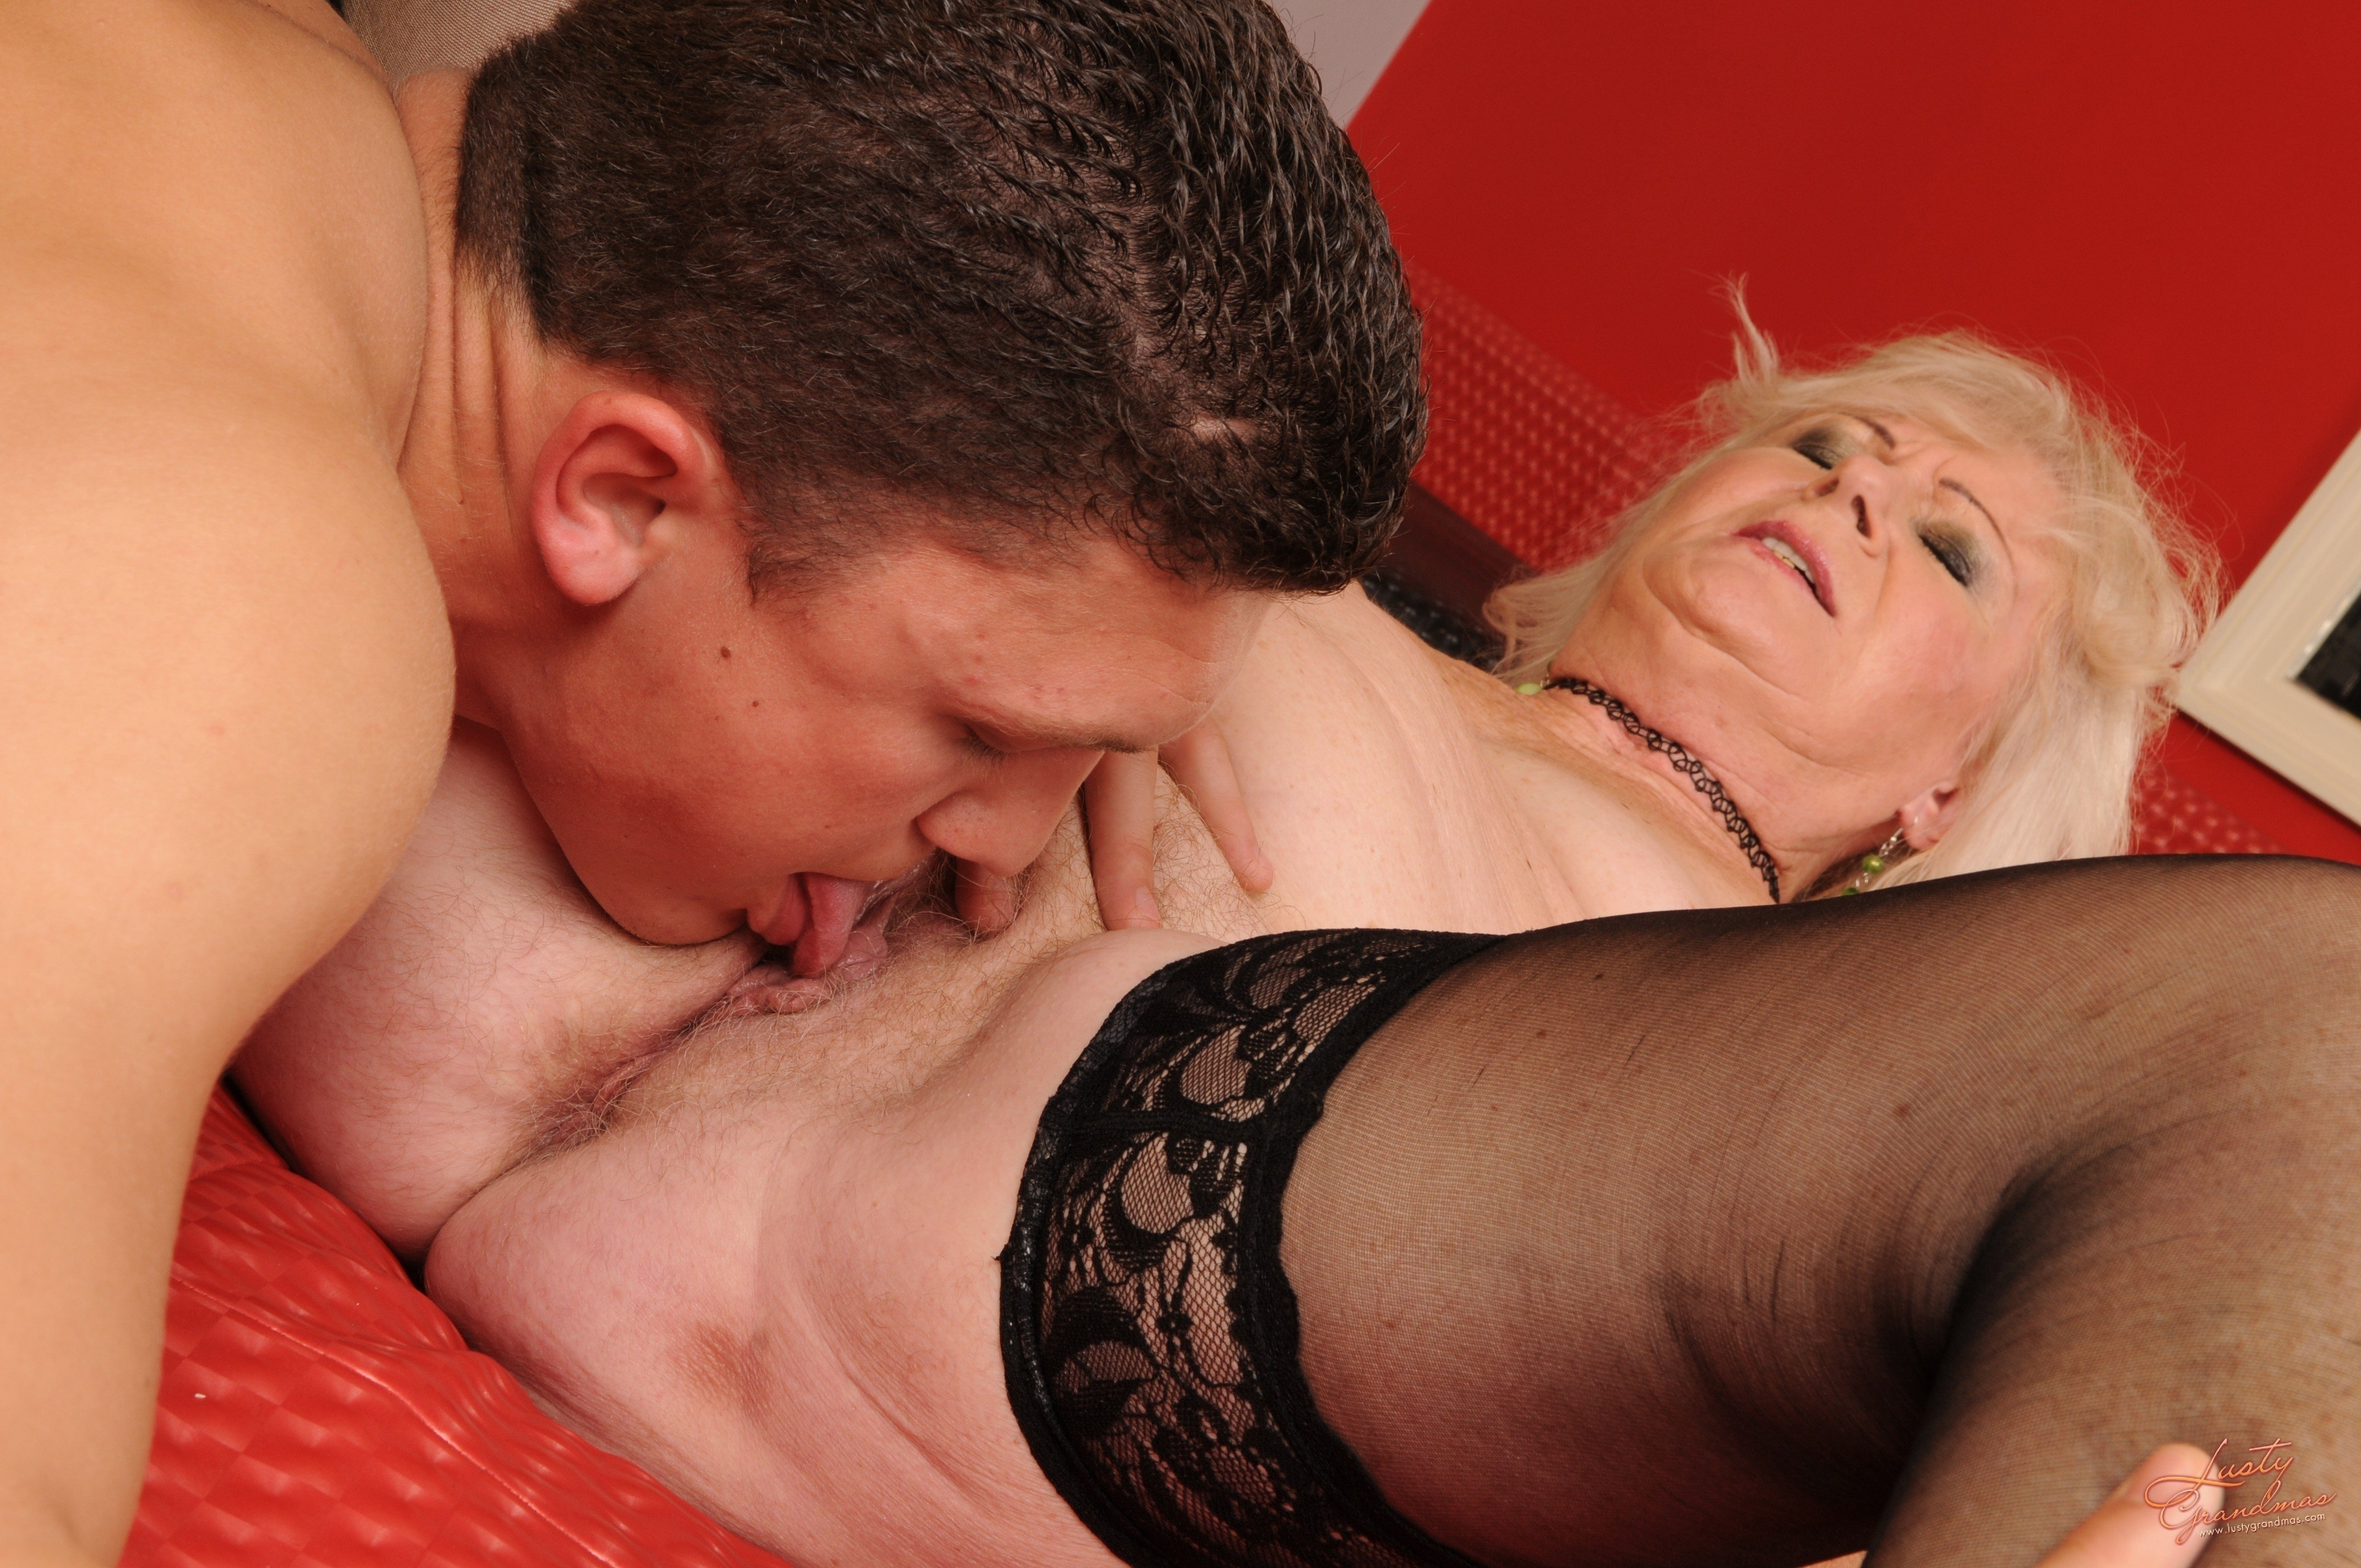 Mature Licking Pussy Porn And Older Women Pics